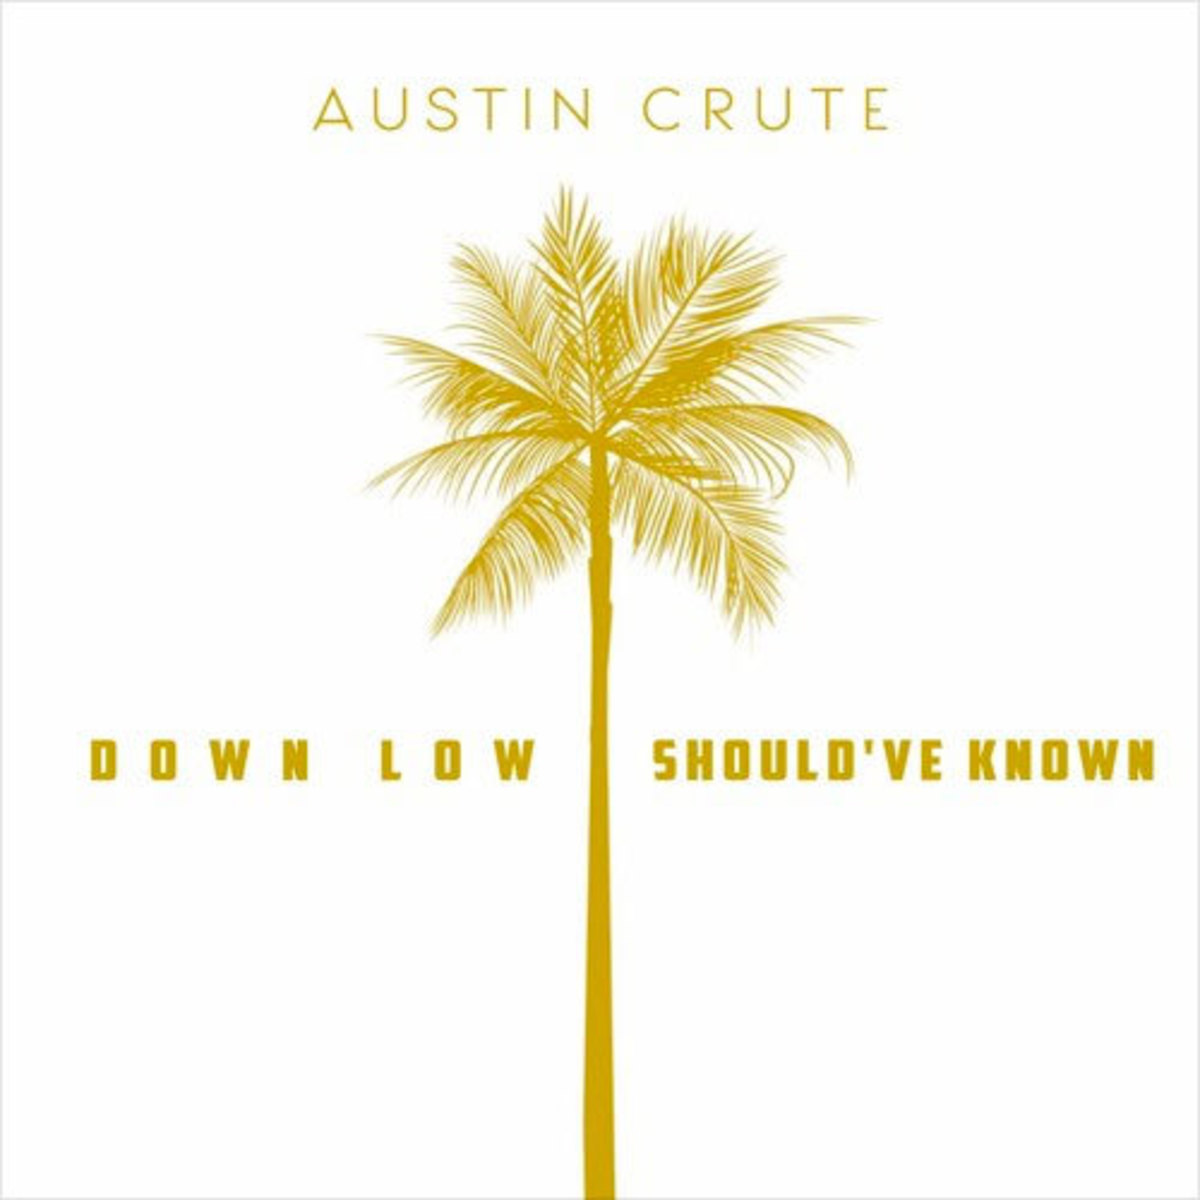 austin-crute-down-low-shouldve-known.jpg